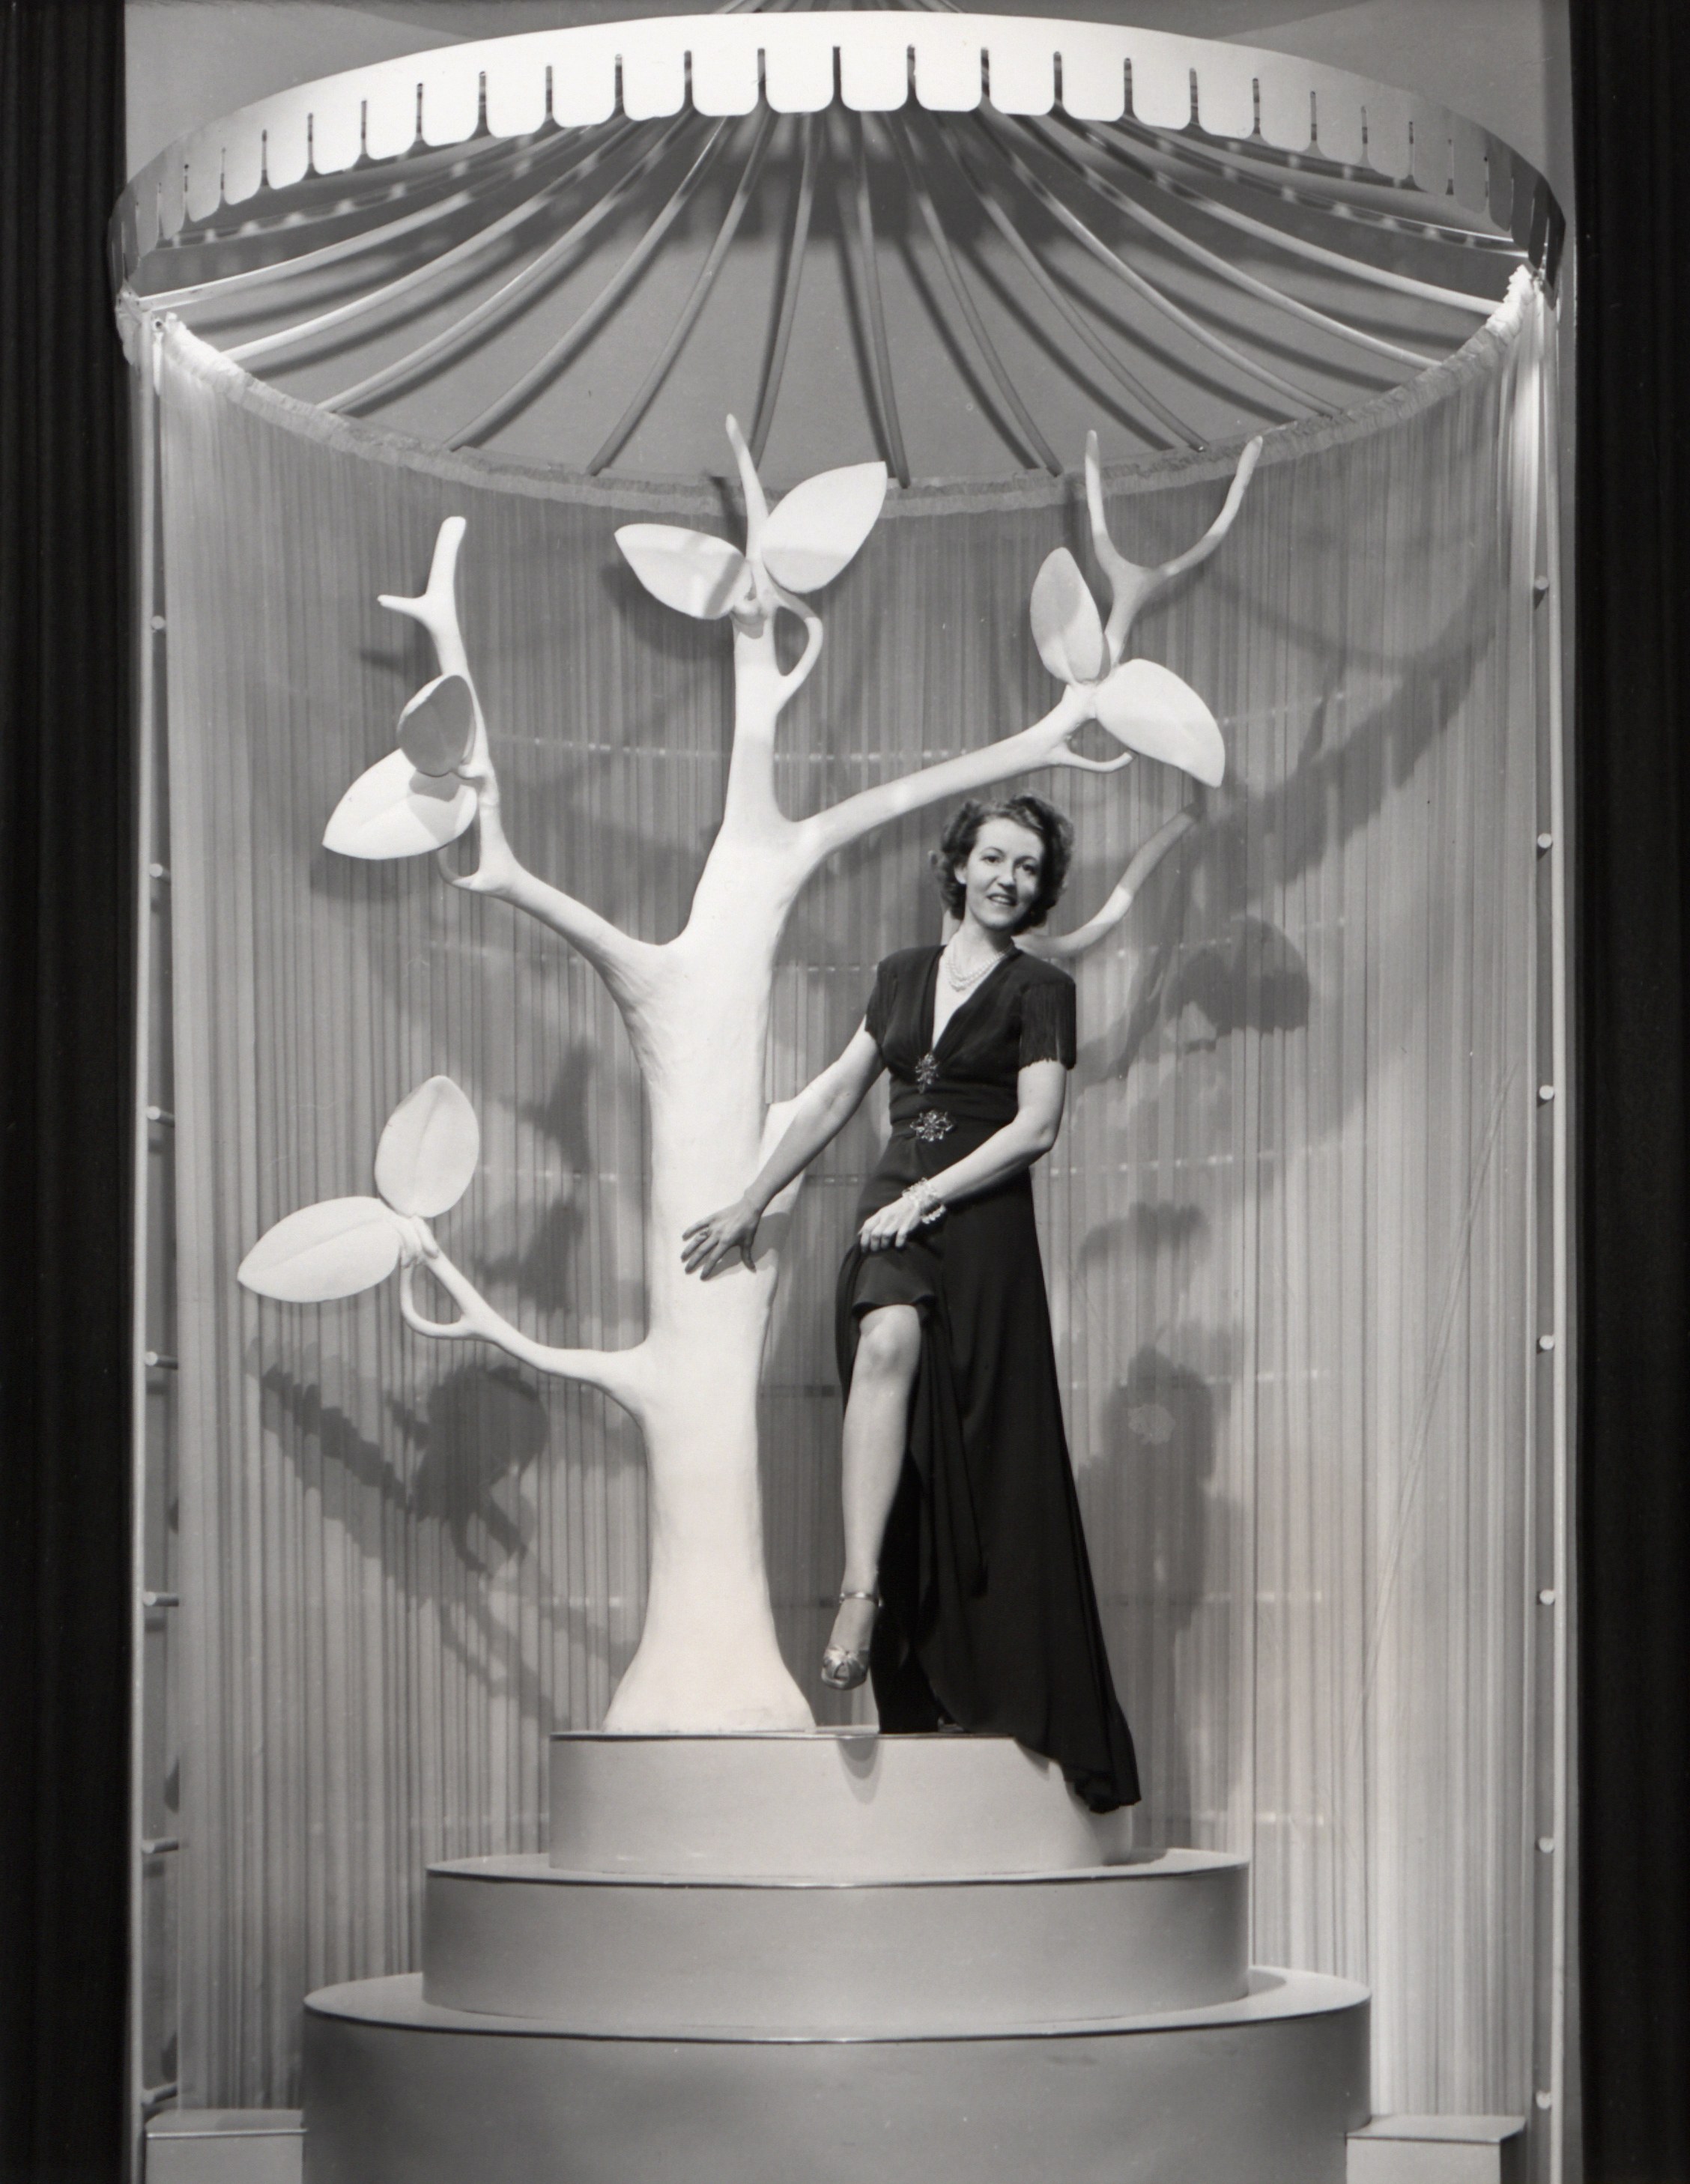 Black and white image of a woman modeling nylon stockings in an exhibit at the New York World's Fair